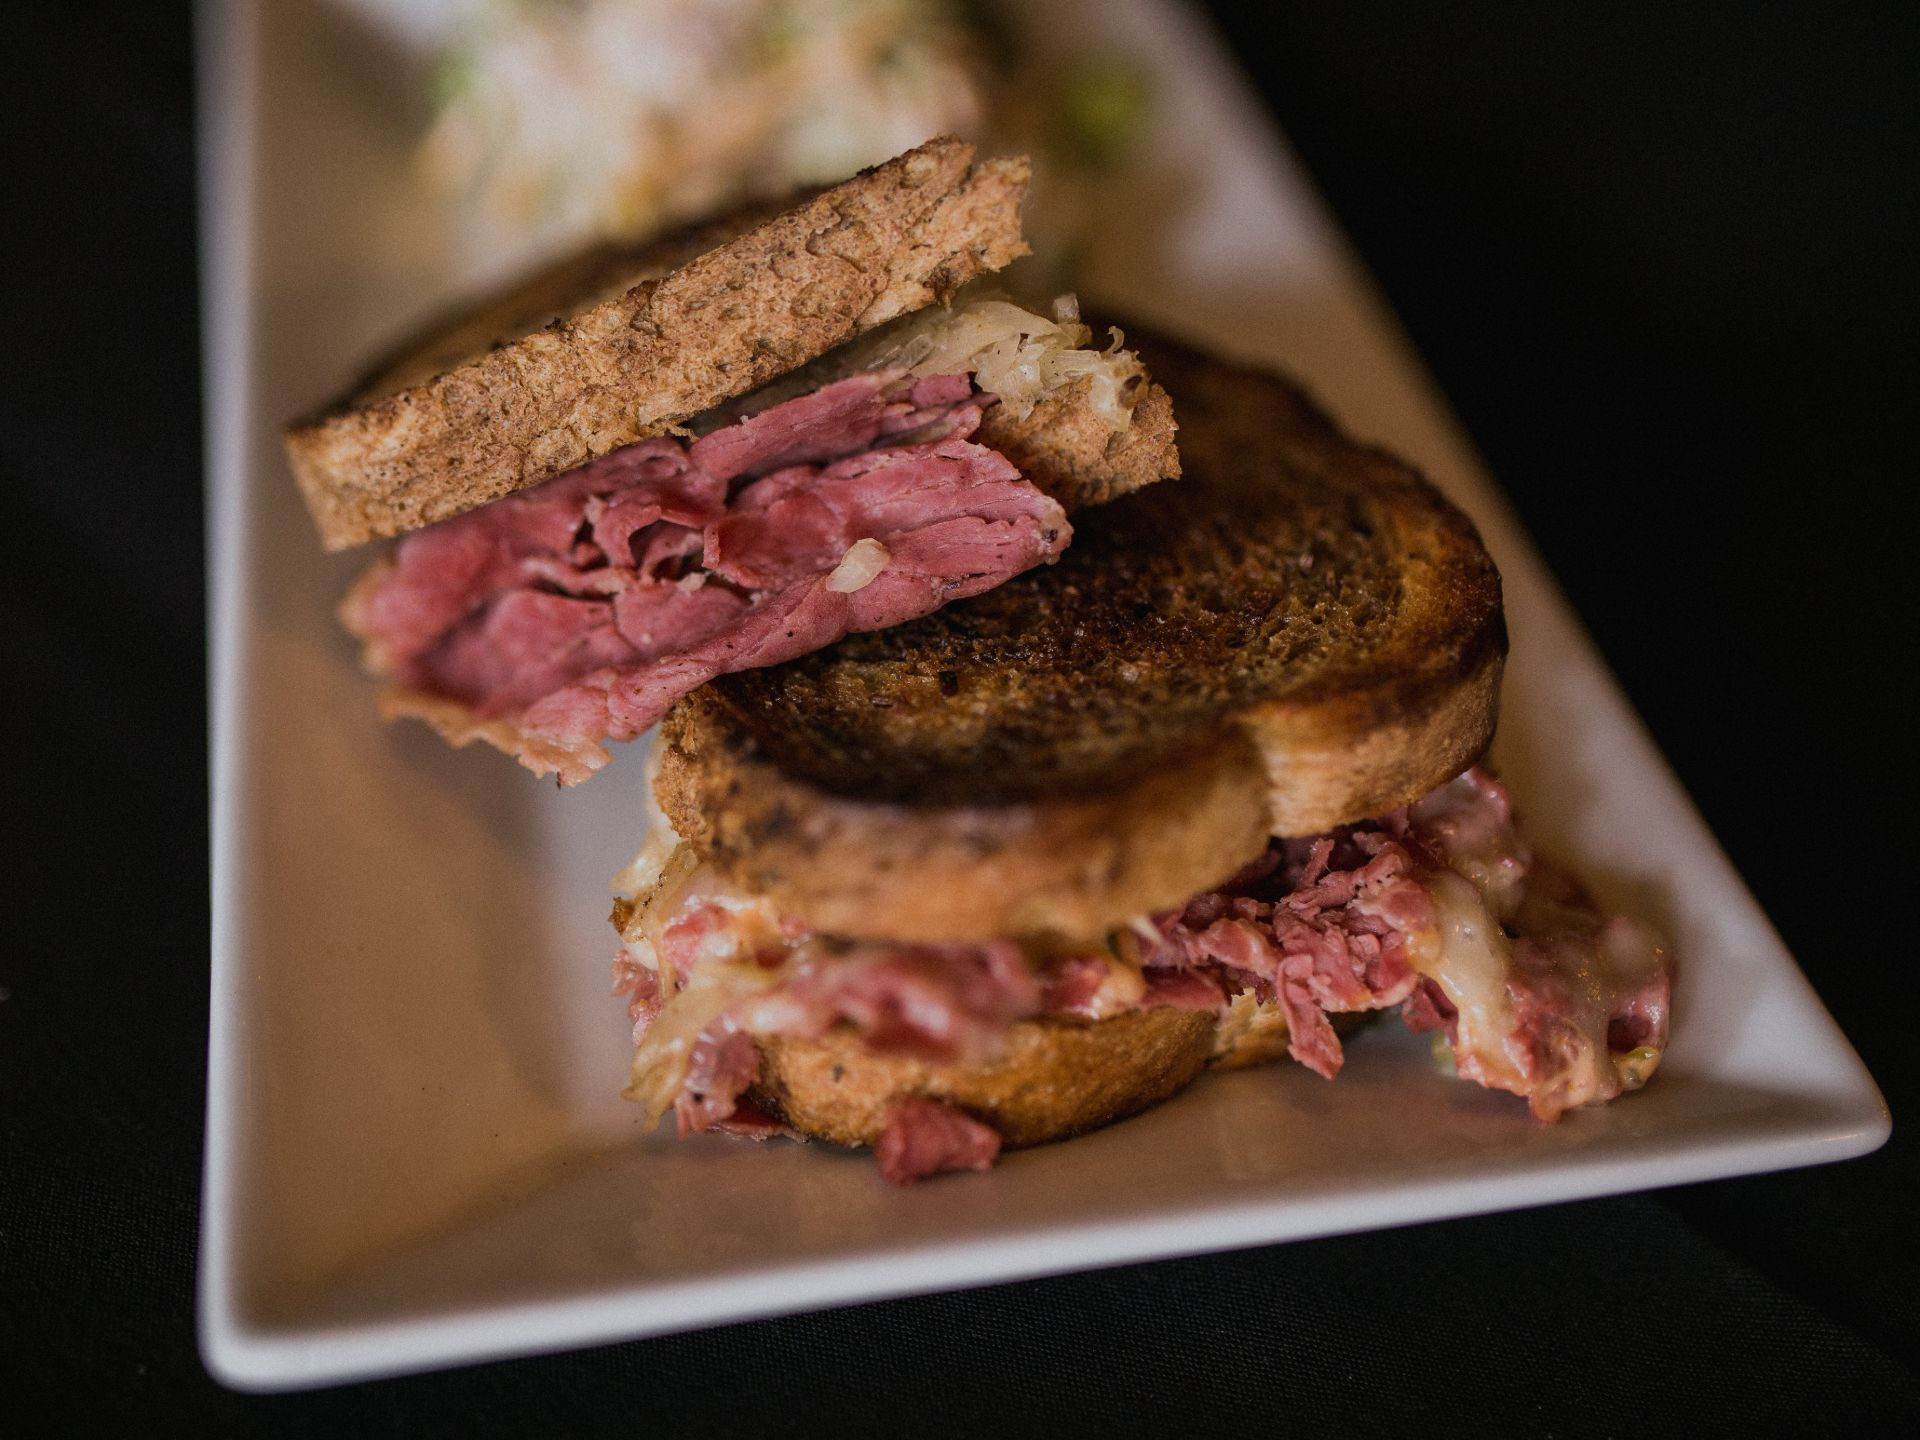 Reuben sandwich with sauerkraut on marble rye